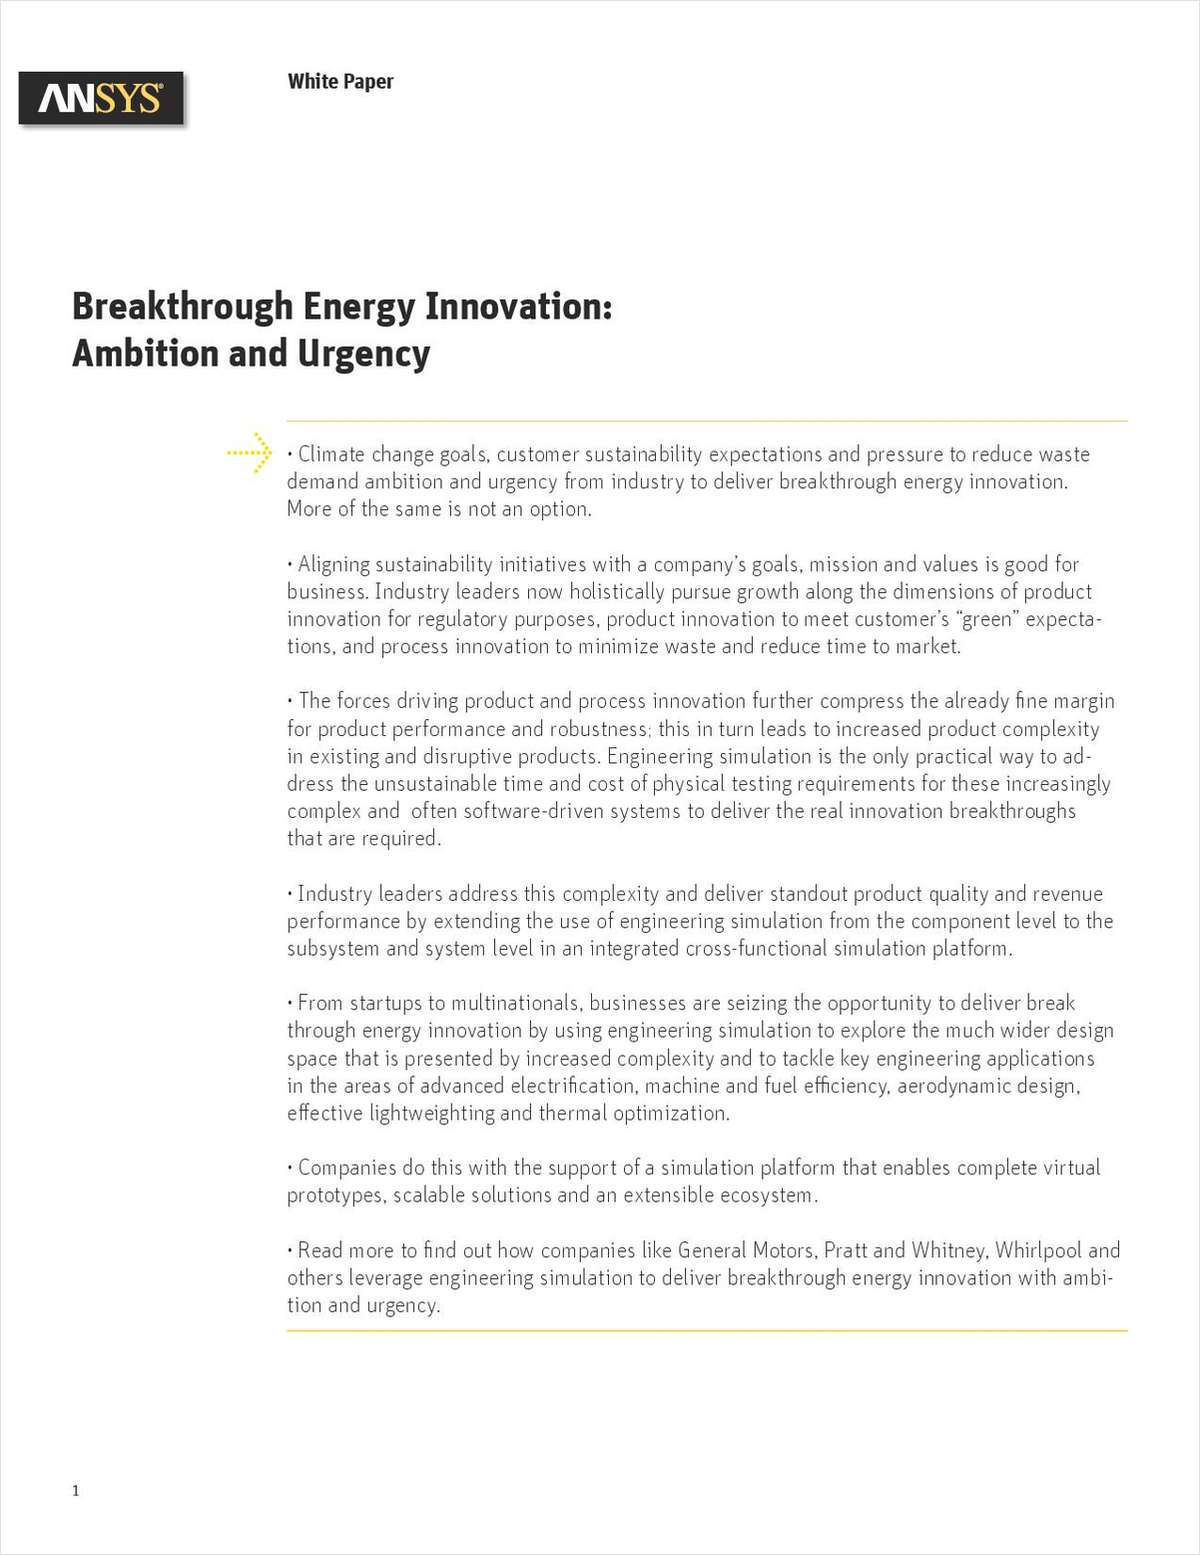 Breakthrough Energy Innovation: Ambition and Urgency